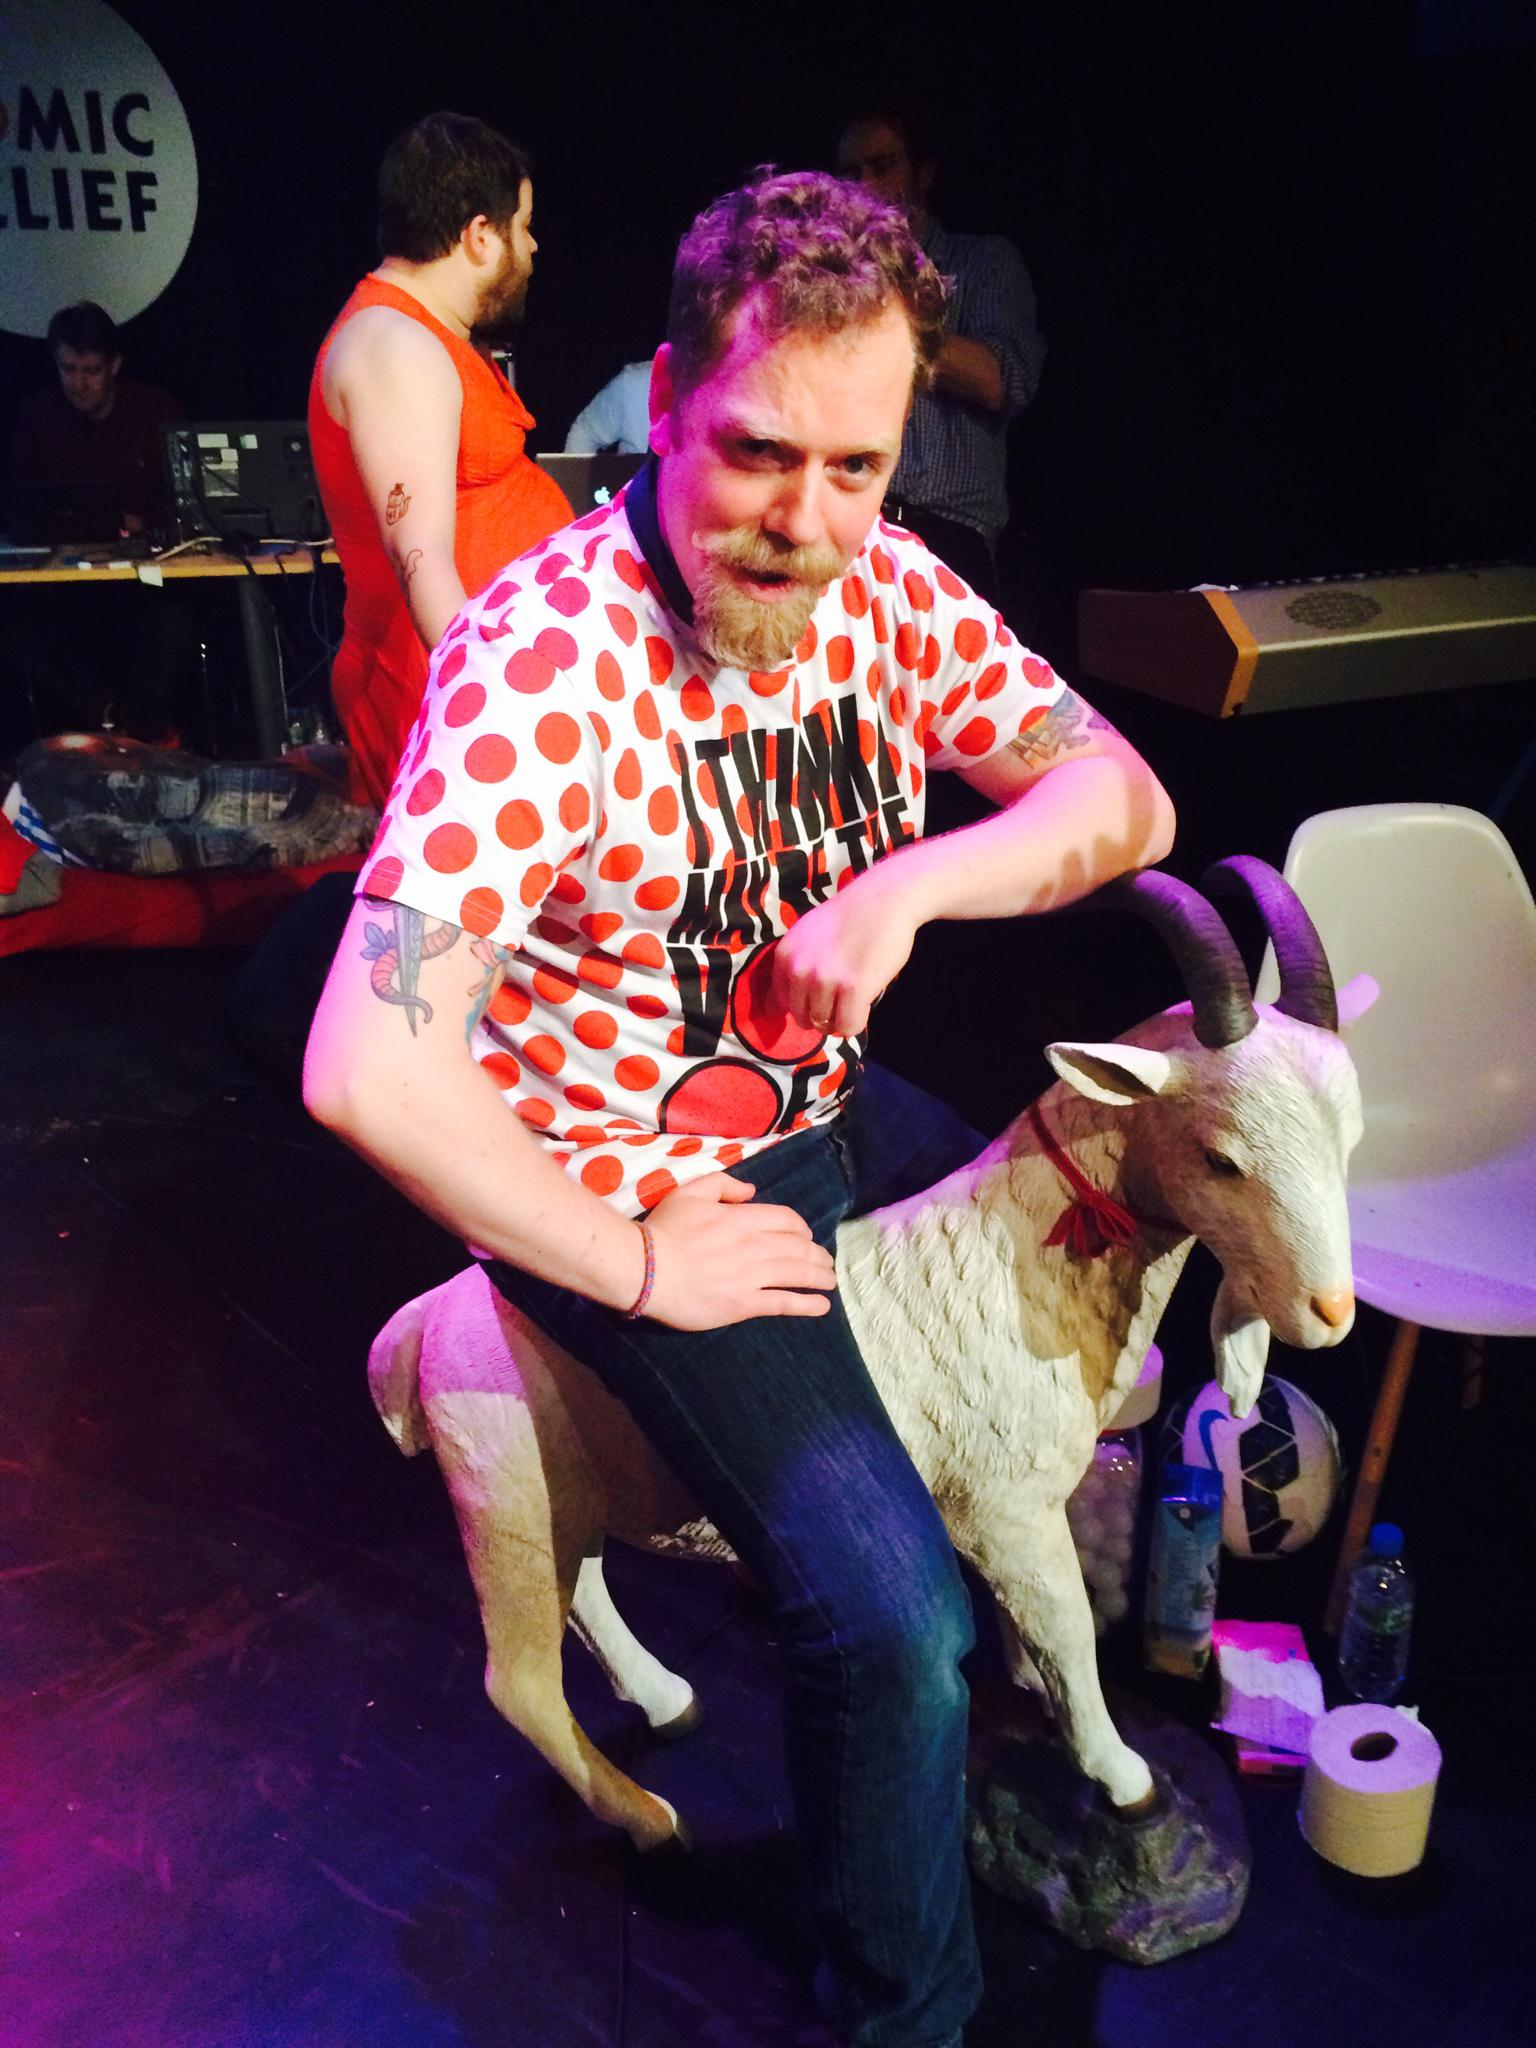 You can watch #Watson27 live on YouTube. See @RufusHound riding a goat @rednoseday http://t.co/Lmu0UGrYQB